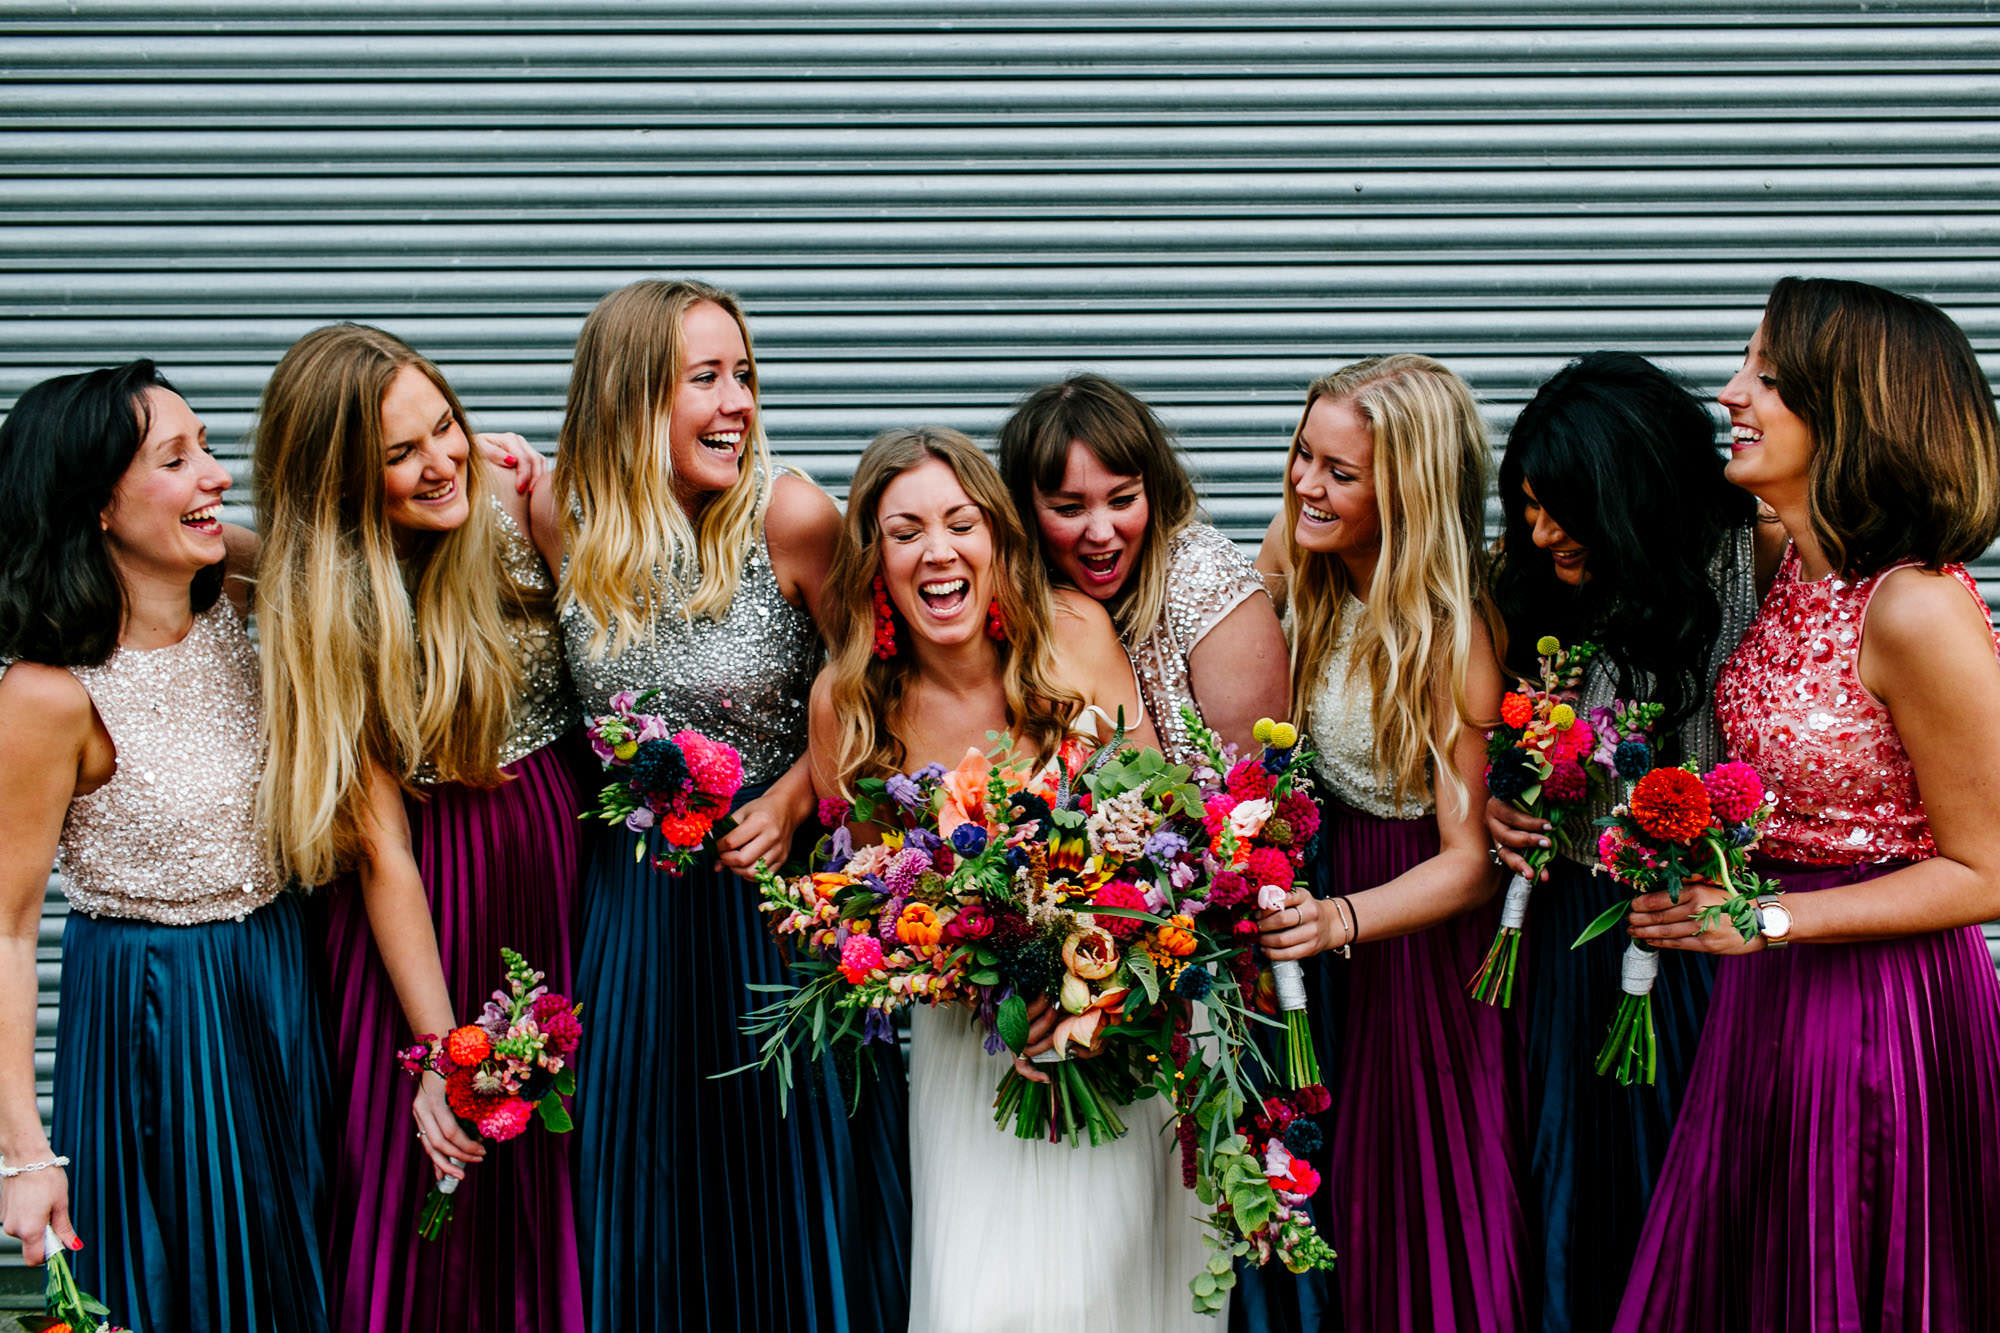 Wedding planning is stressful, and your friends are there to help.